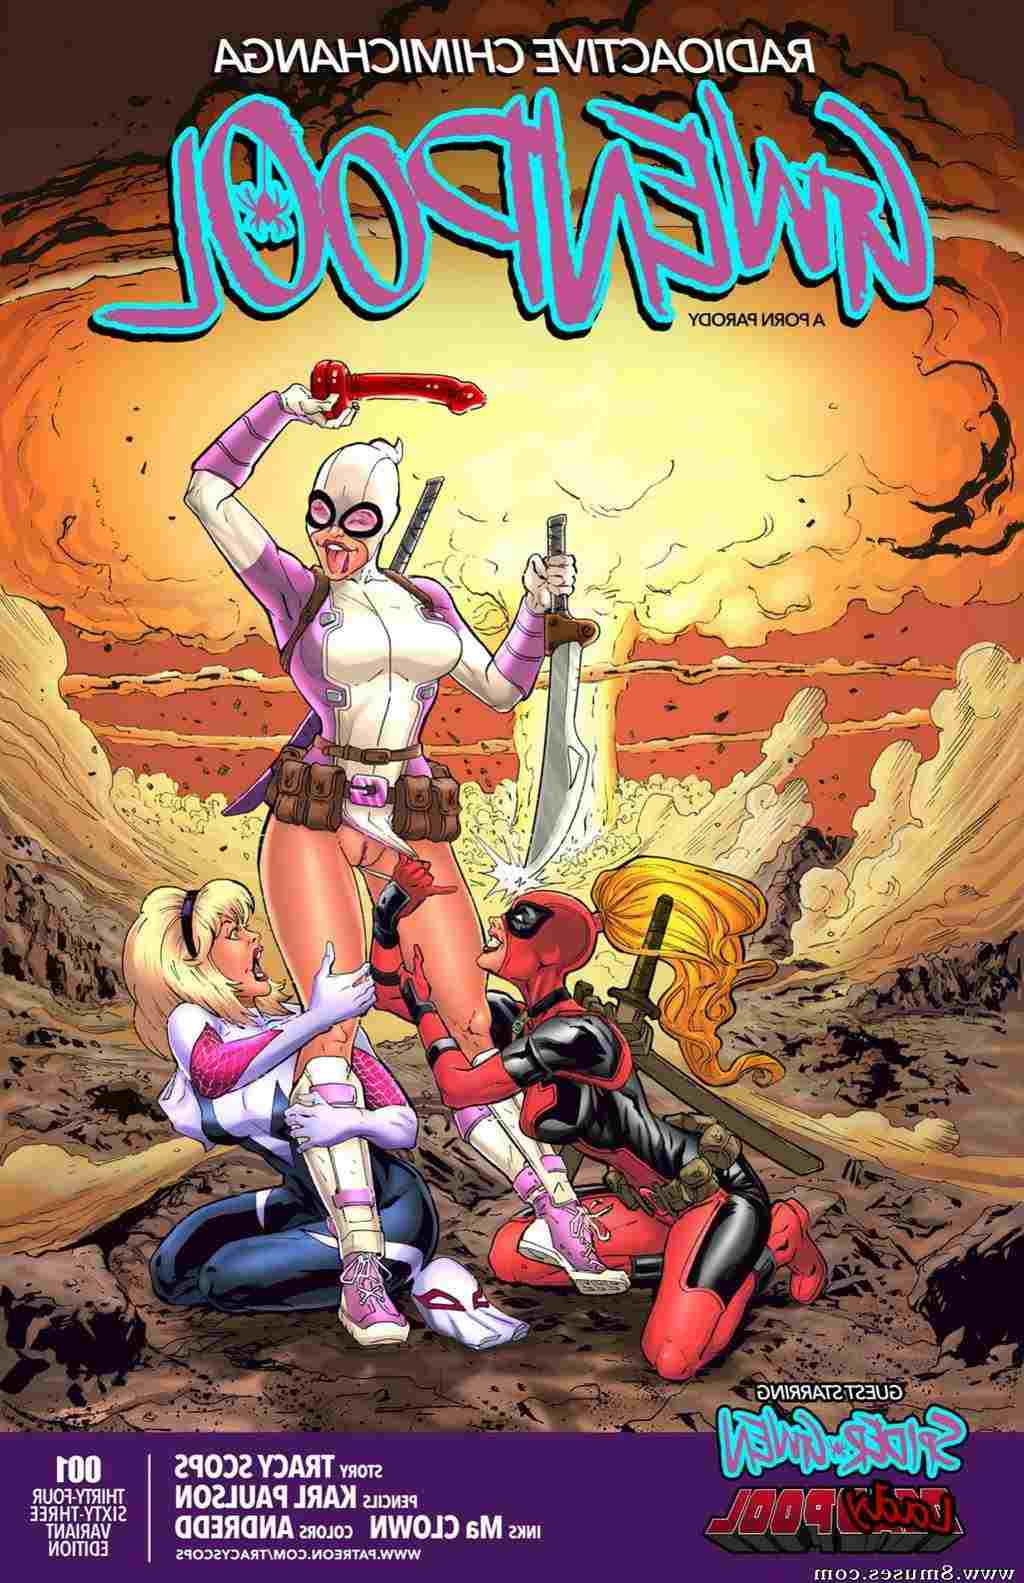 Tracy-Scops-Comics/Gwenpool Gwenpool__8muses_-_Sex_and_Porn_Comics.jpg